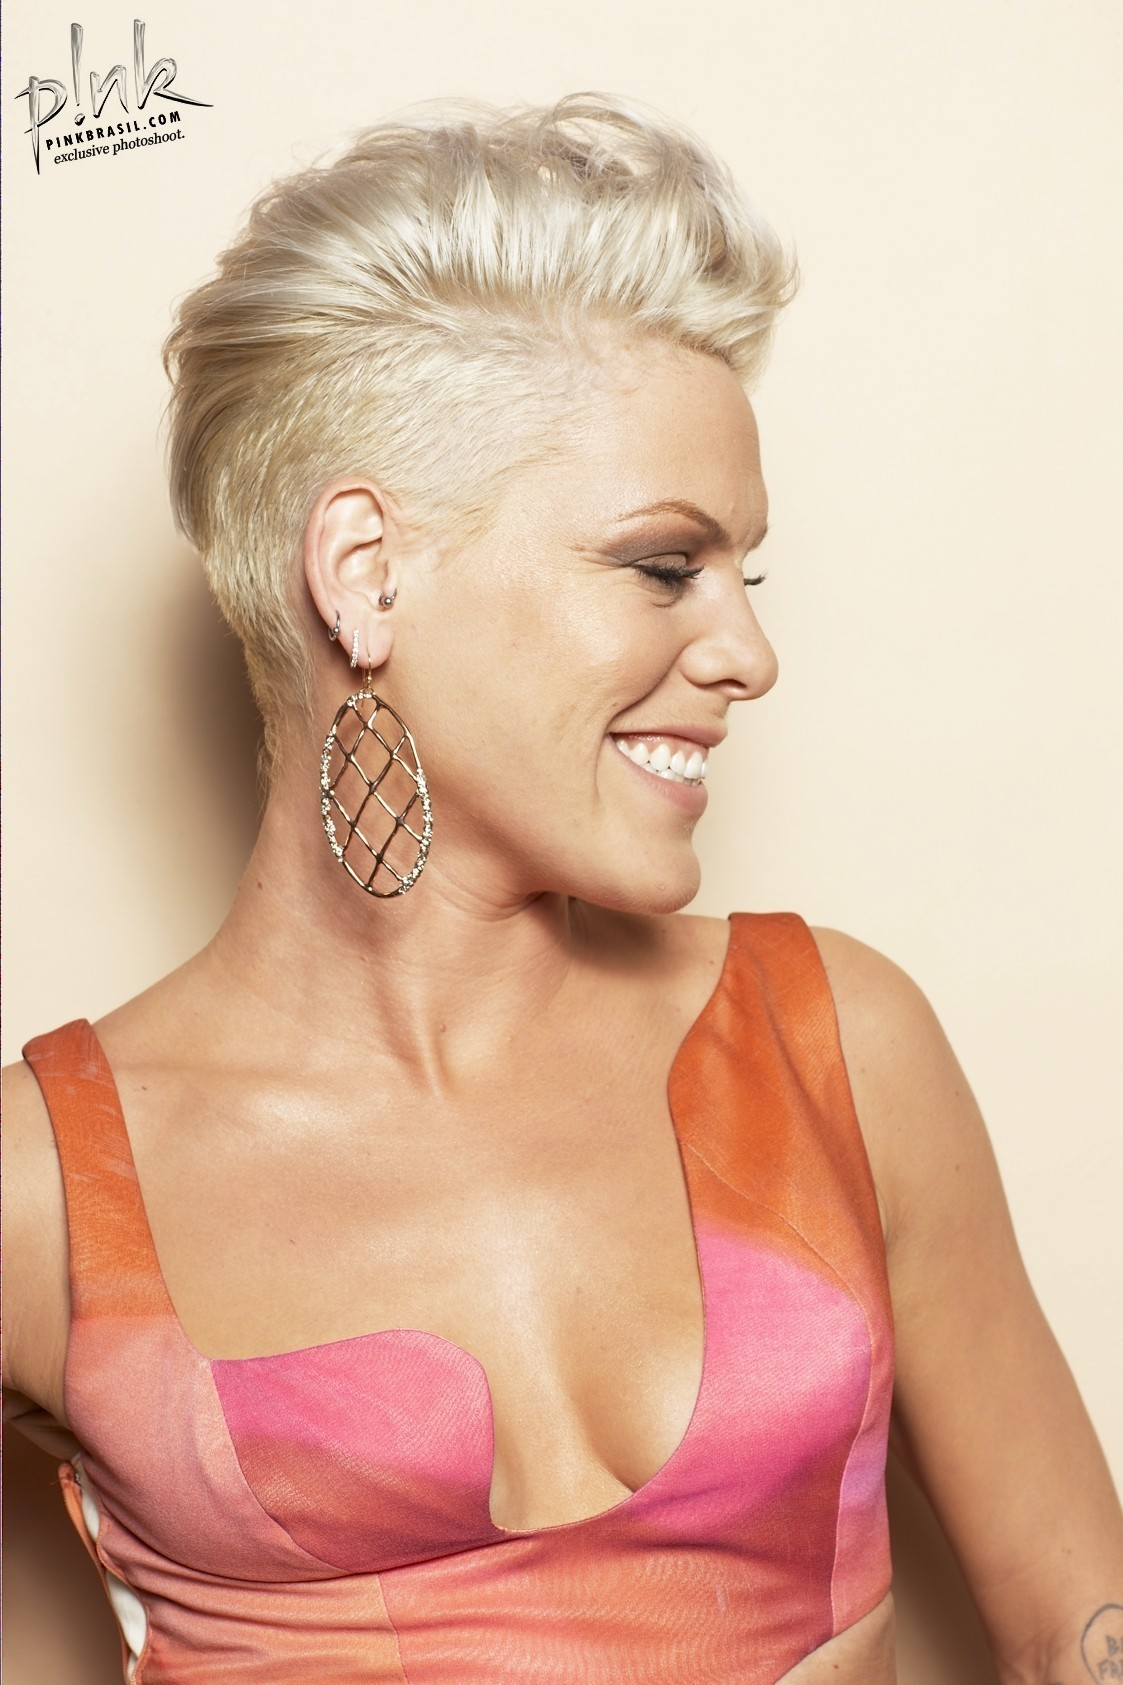 P!nk - Pink Photo (17651021) - Fanpop